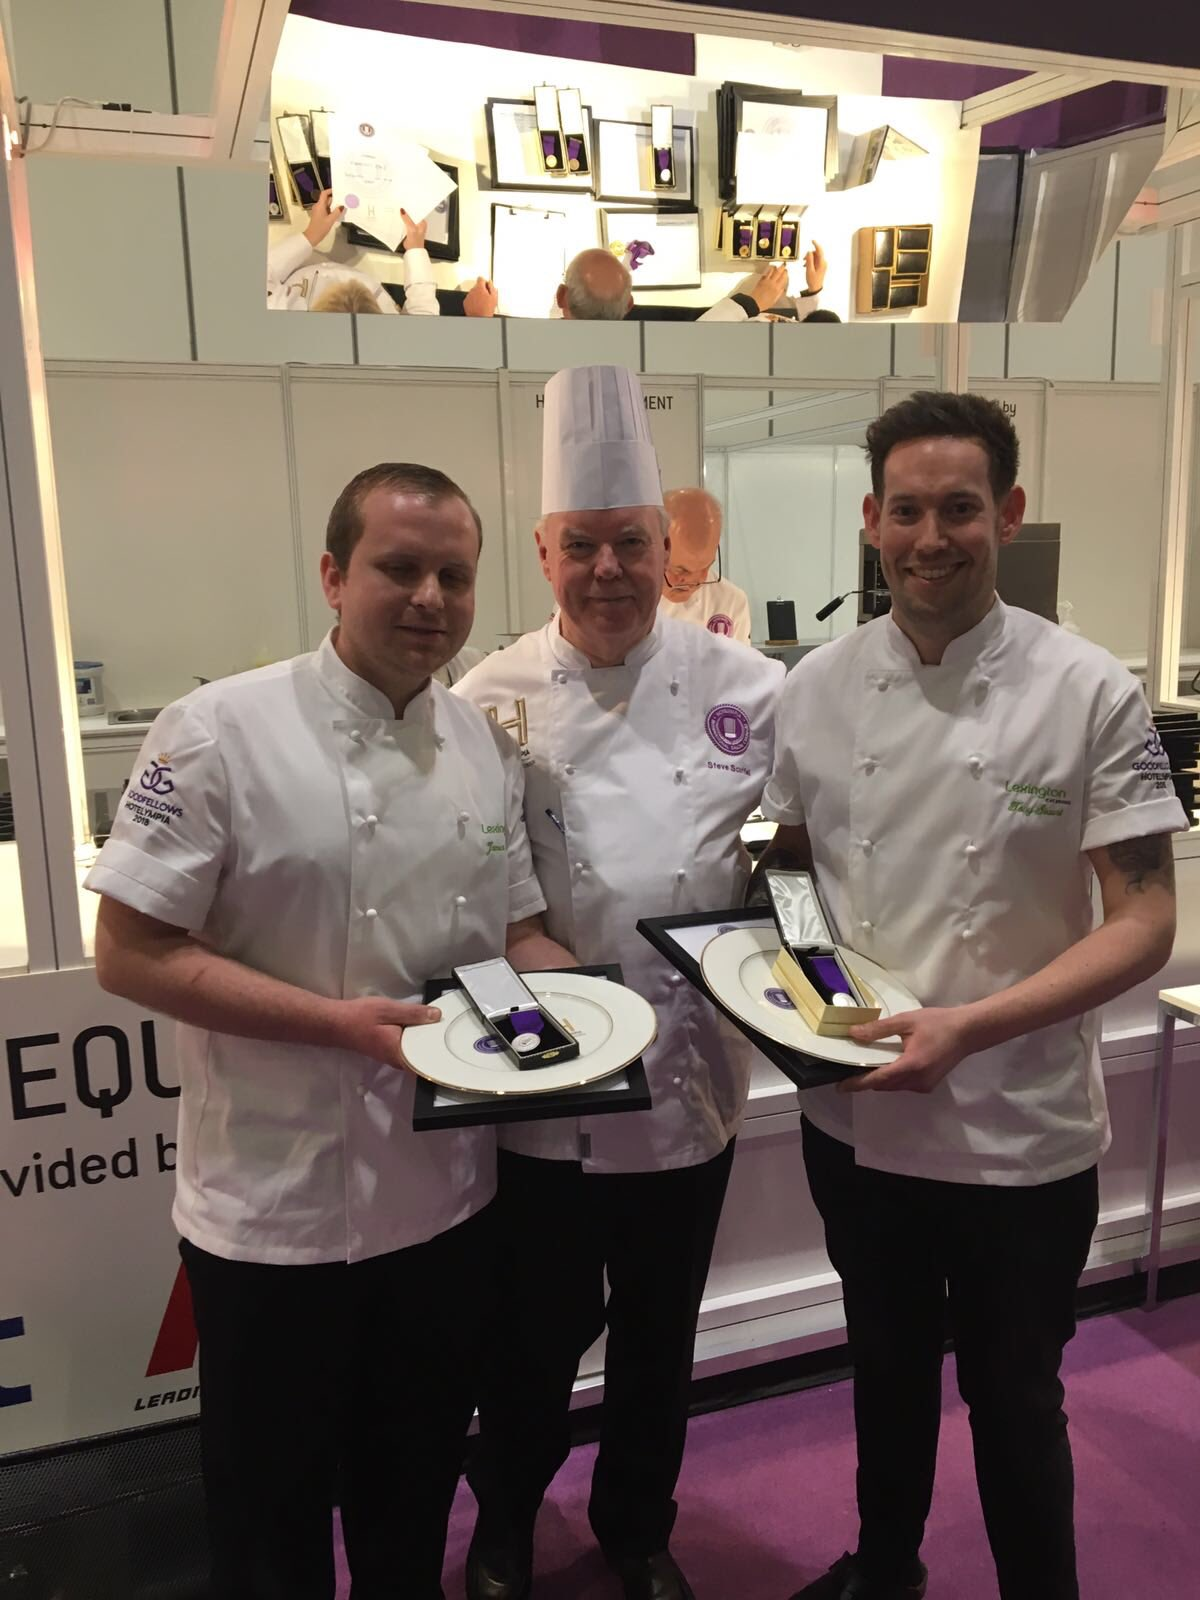 Tony and James - Lexington - Hotelympia 2018